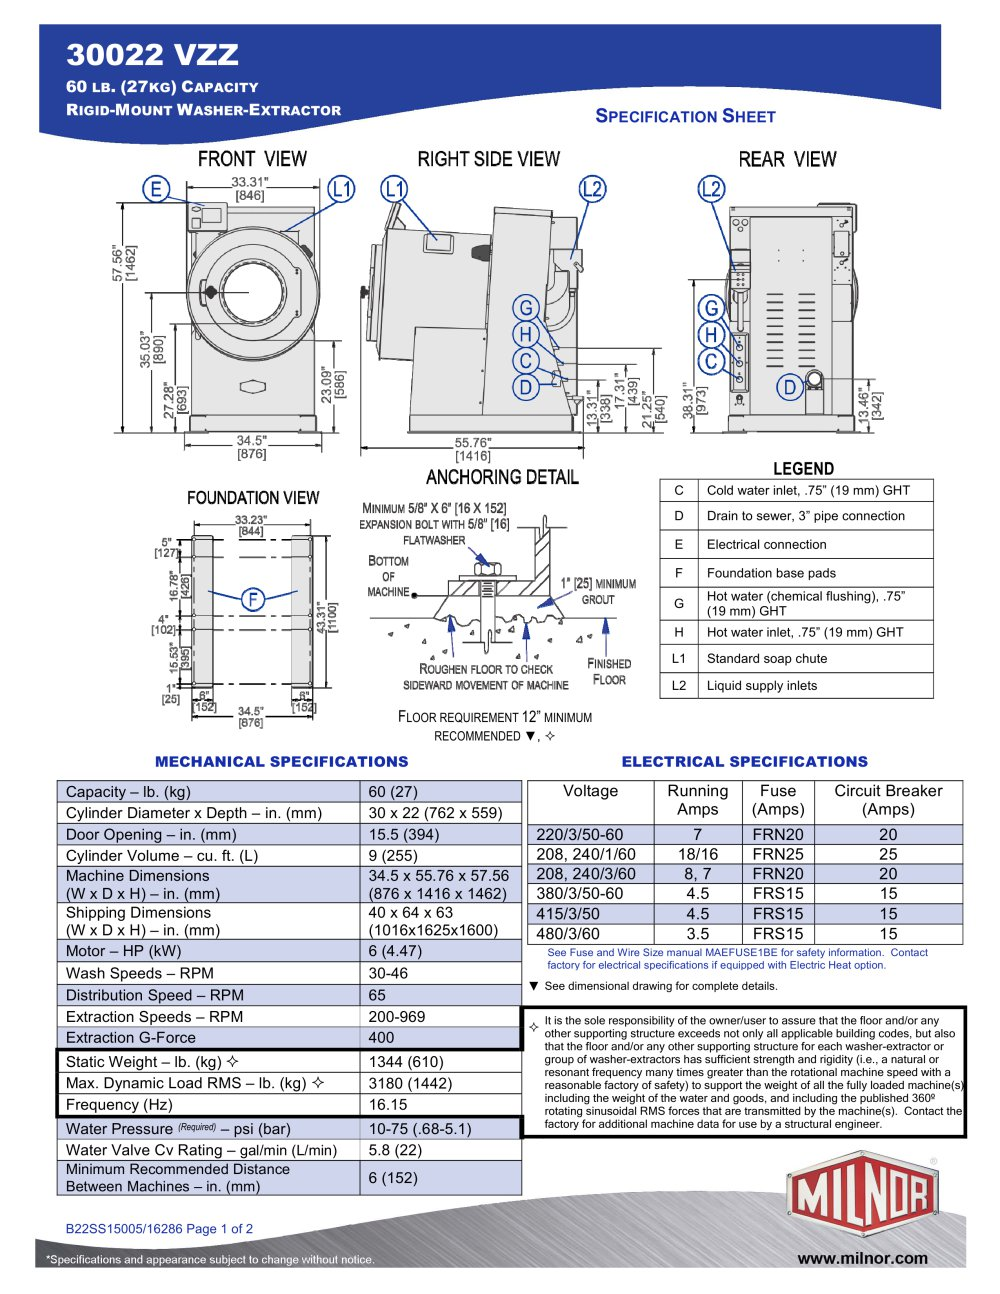 30022vzz milnor pdf catalogues documentation brochures rh pdf archiexpo com Gas Dryer Wiring Diagram Kenmore Dryer Heating Element Wiring-Diagram